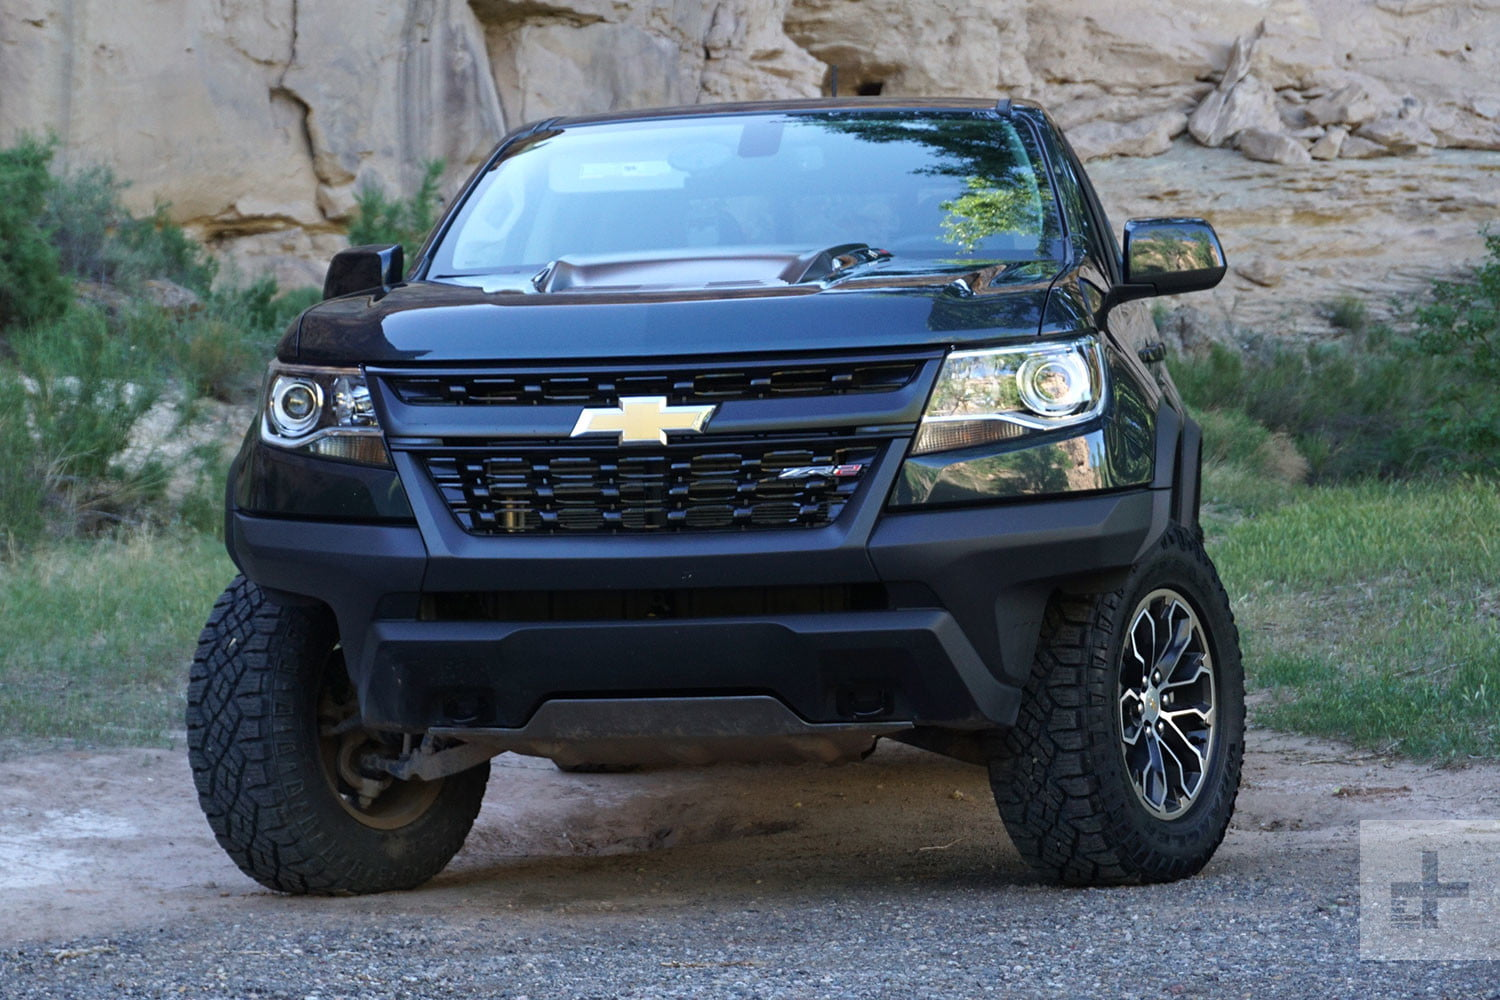 Chevy Colorado Z71 >> 2017 Chevrolet Colorado ZR2 offers off-road capability and street manners | Digital Trends